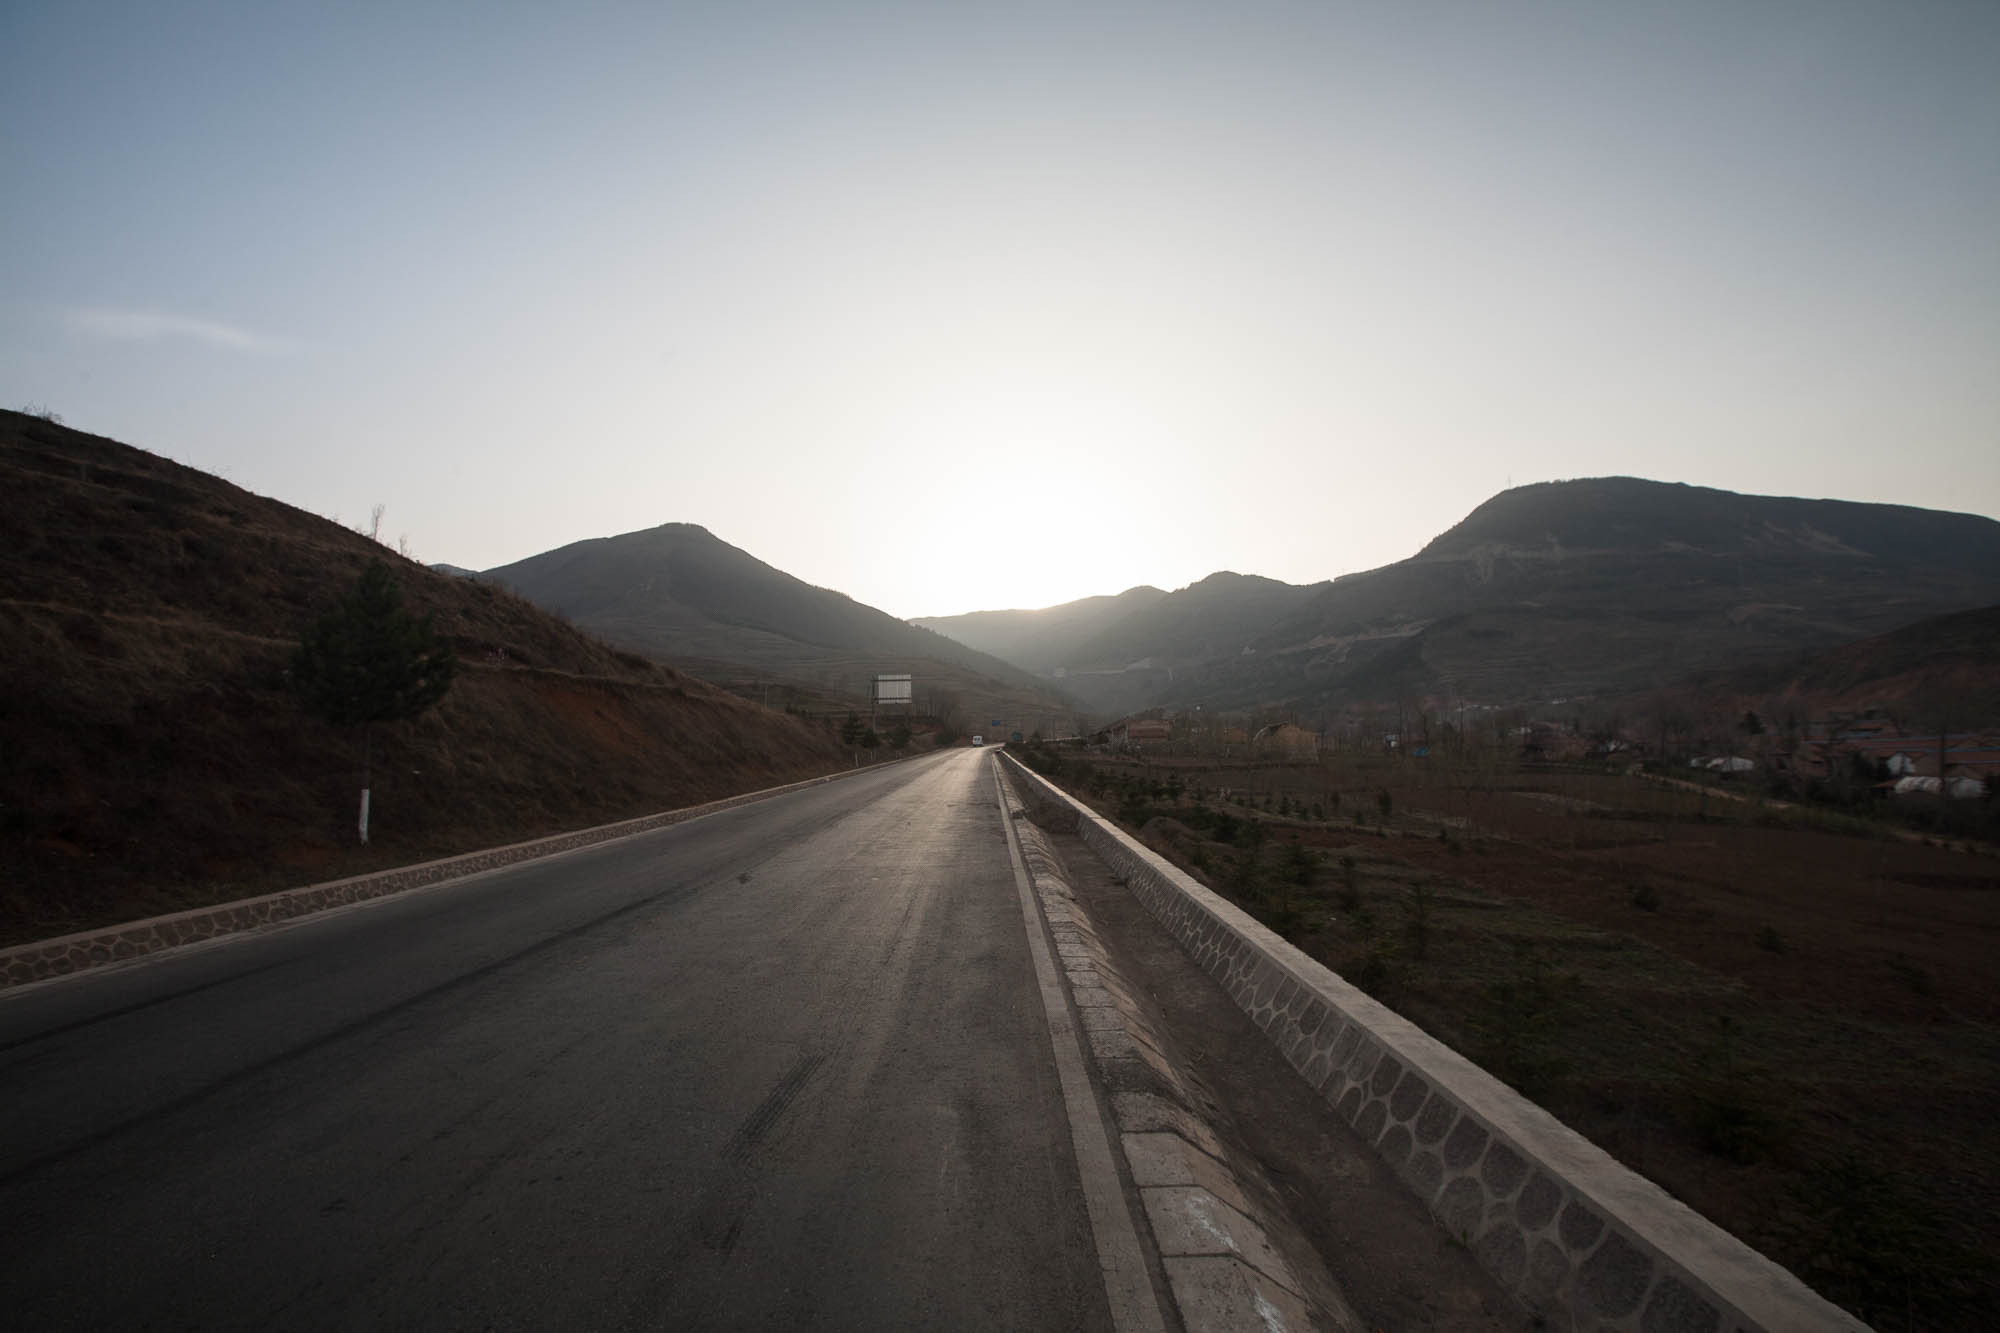 road up the mountain